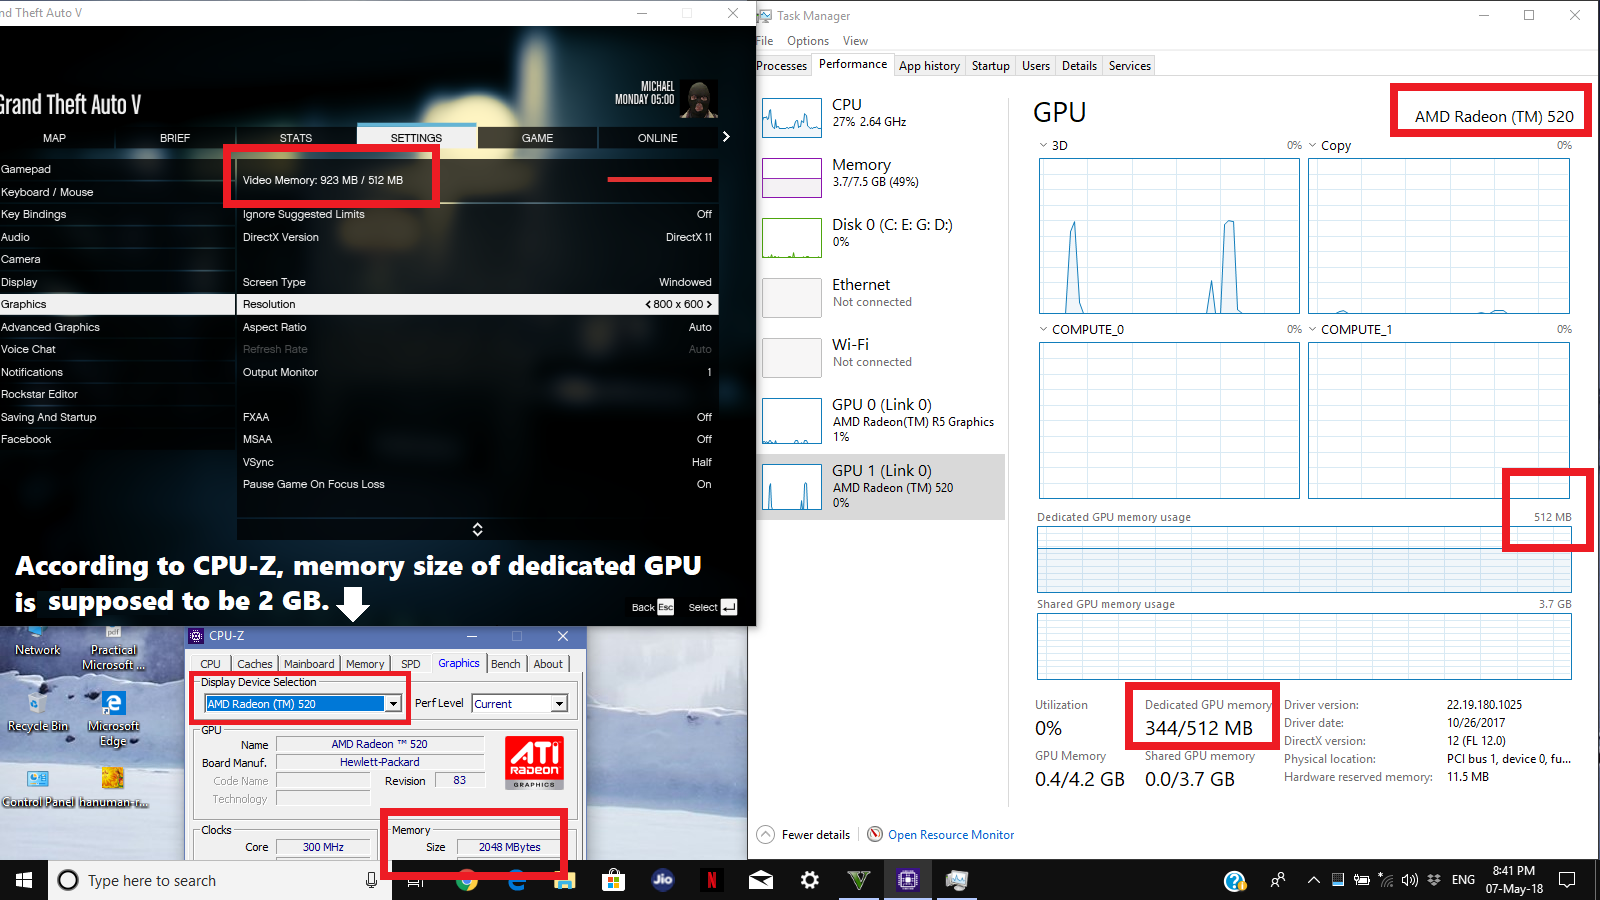 Why Dedicated Vram Of 2 Gb Is Not Being Used By The Discrete Gpu Only 512 Mb Being Used Just Like Mine Integrated Gpu Does Tom S Hardware Forum